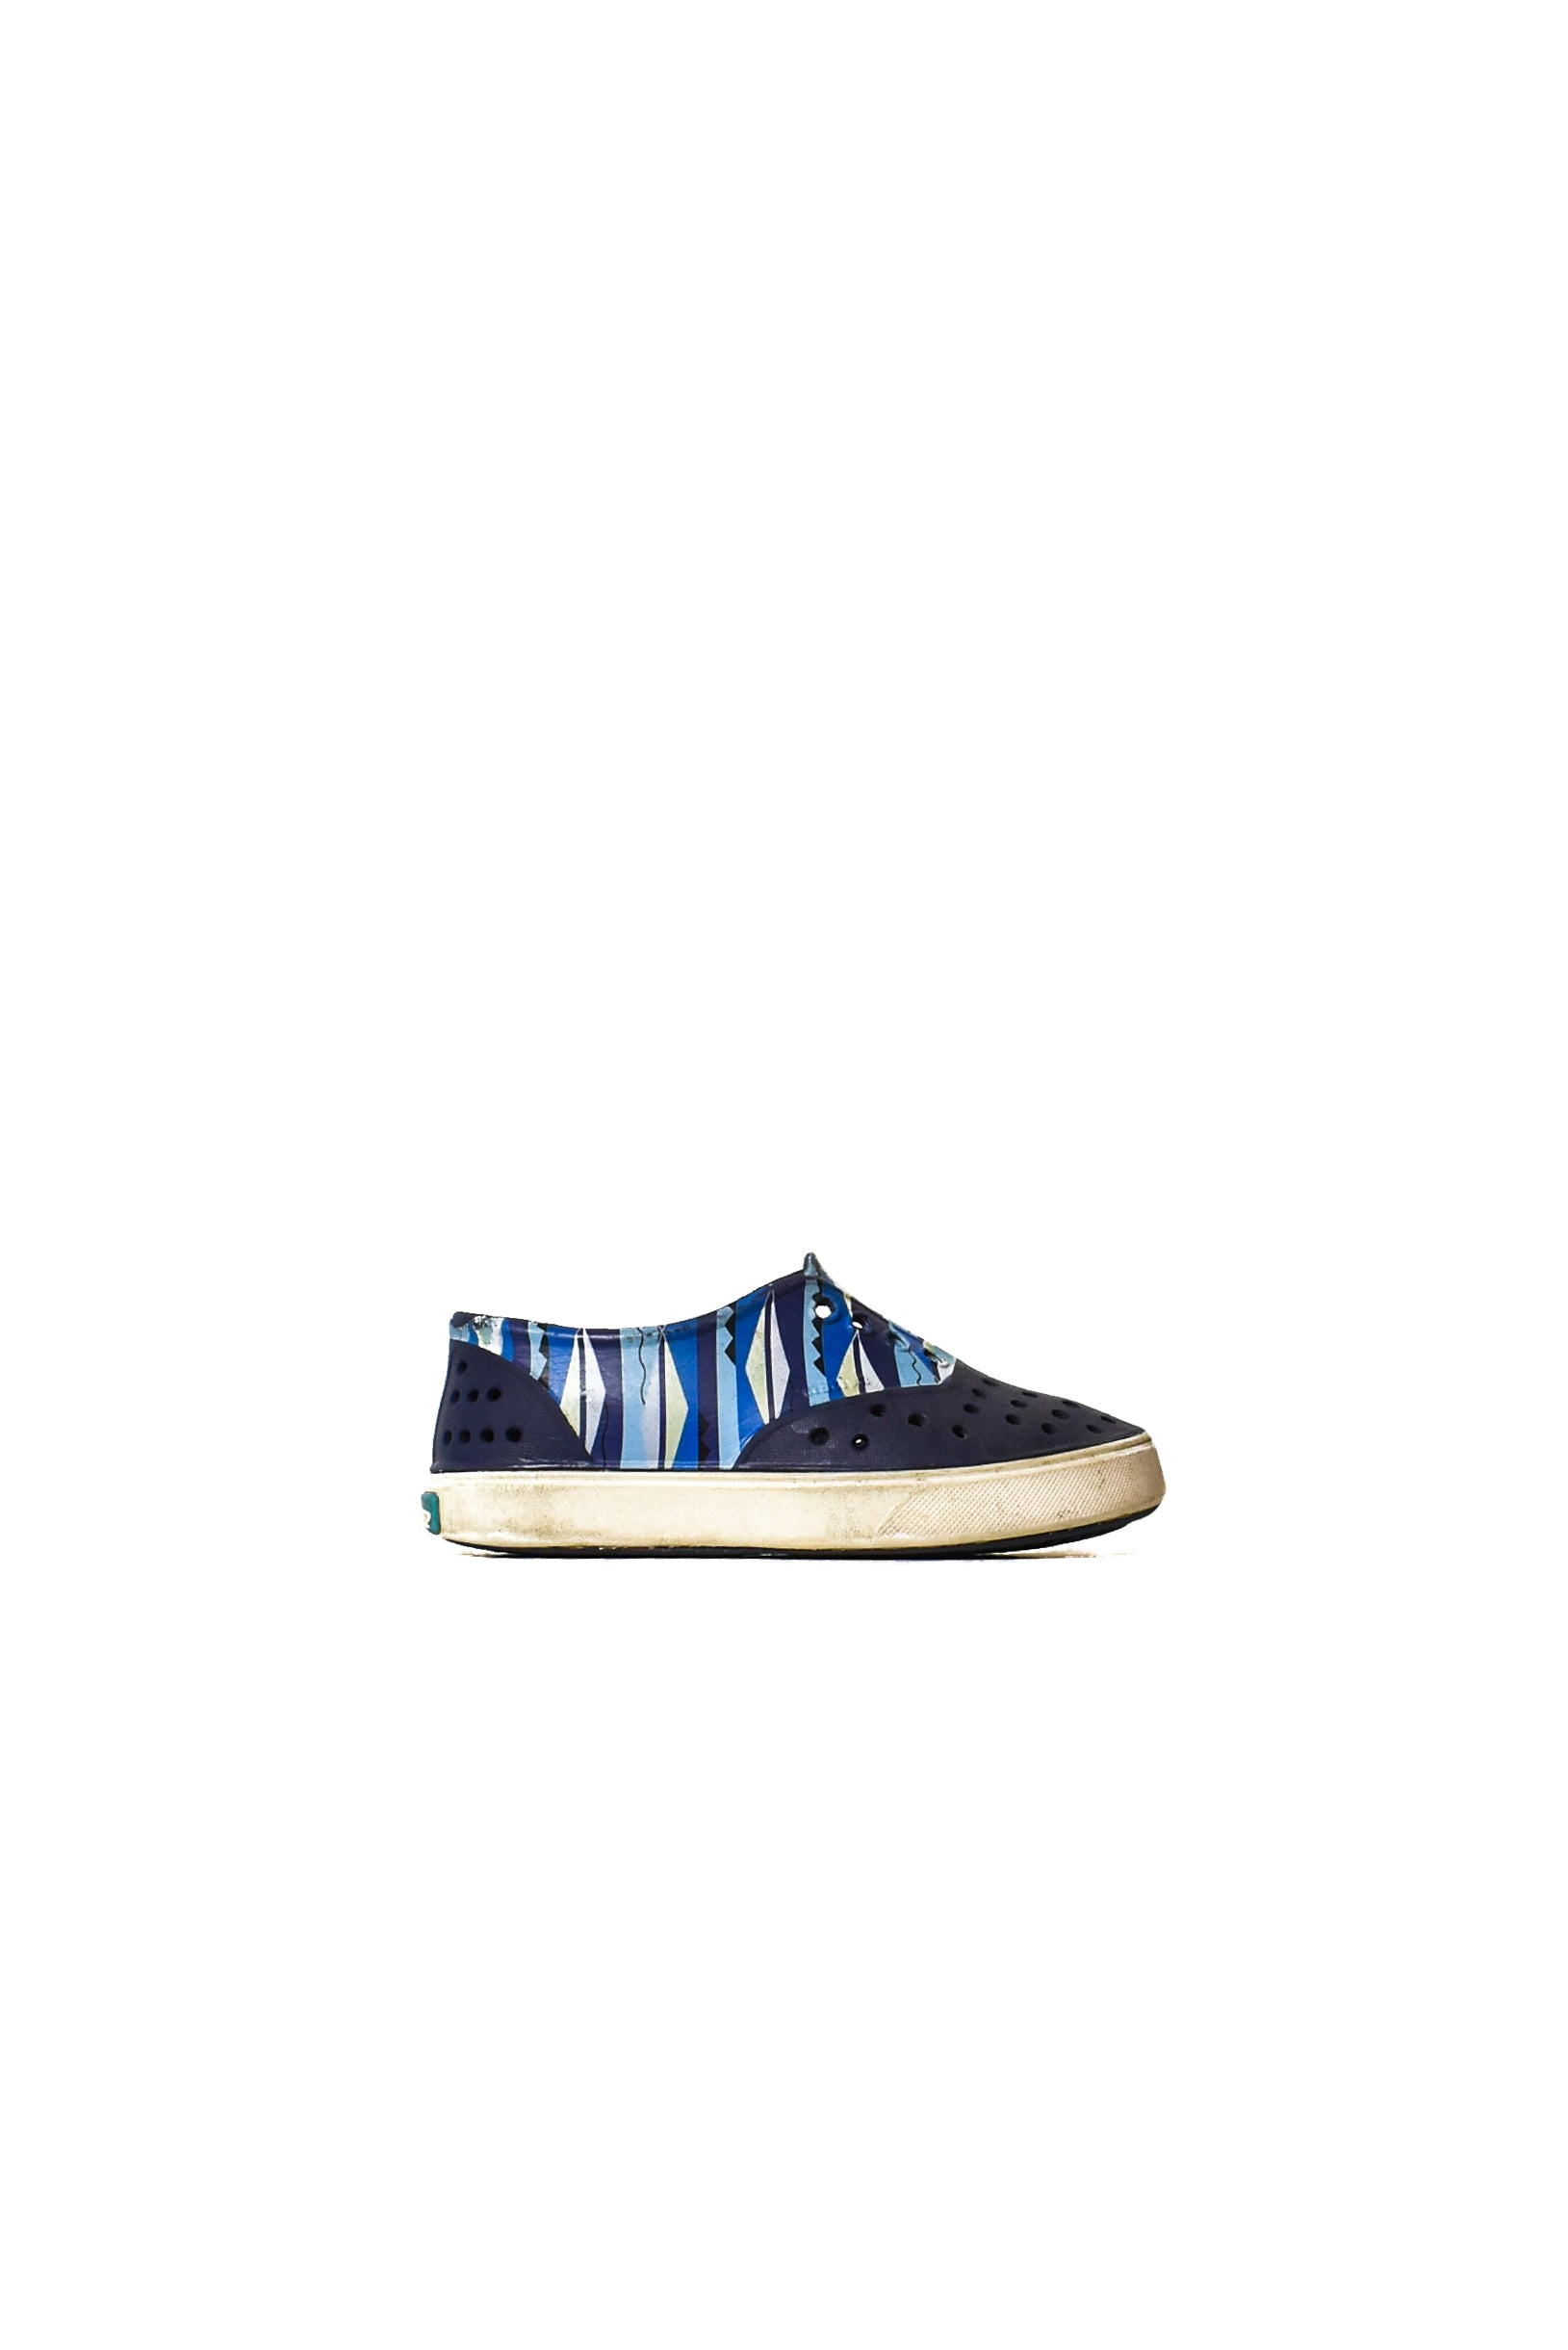 Native Shoes at up to off at Retykle